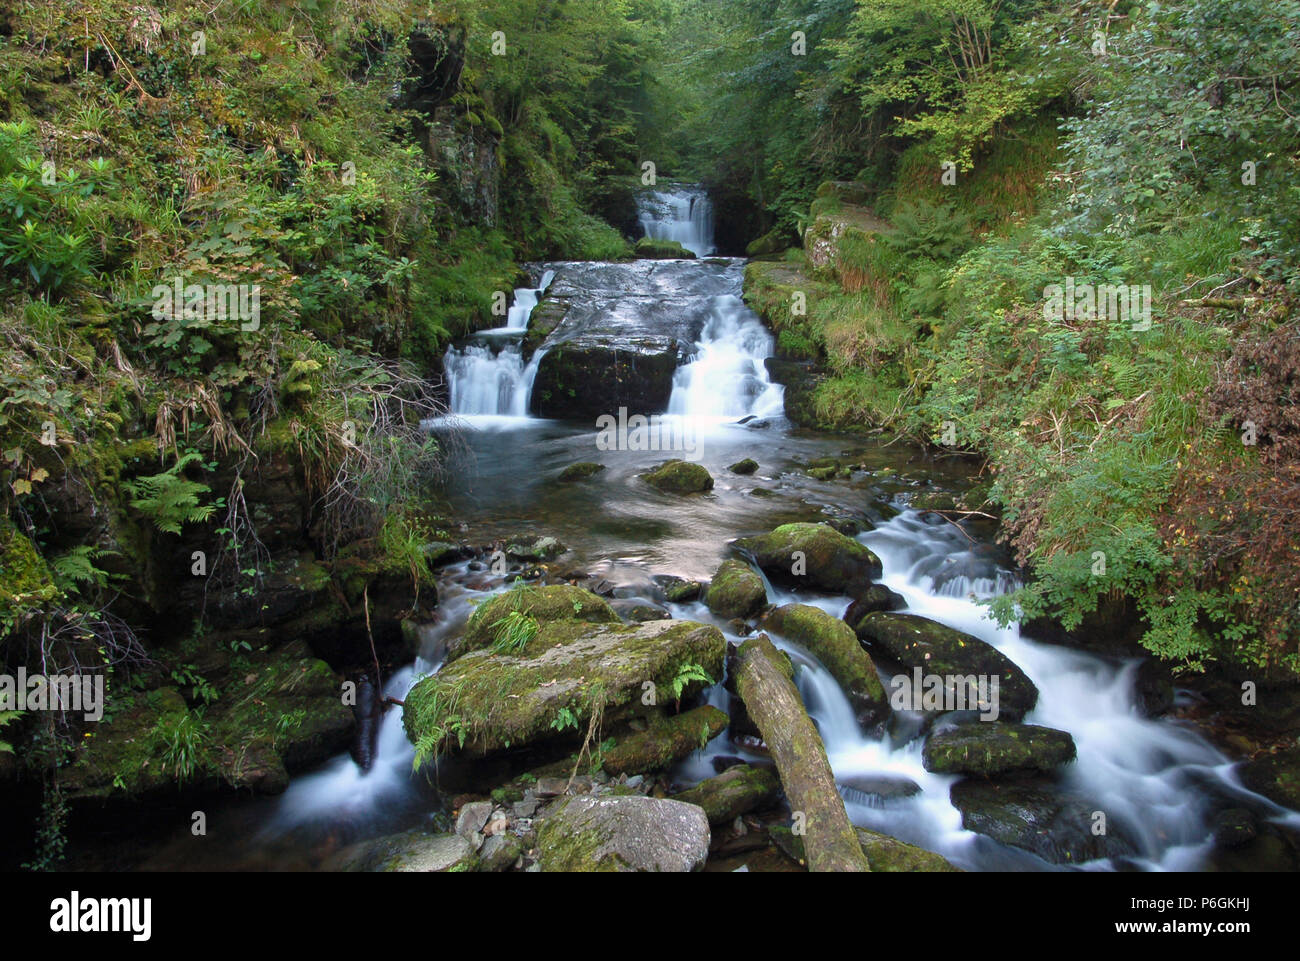 Long Exposure Photograph of a Waterfall near Bucks Mills on the North Devon Coast Area of Outstanding Natural Beauty - Stock Image